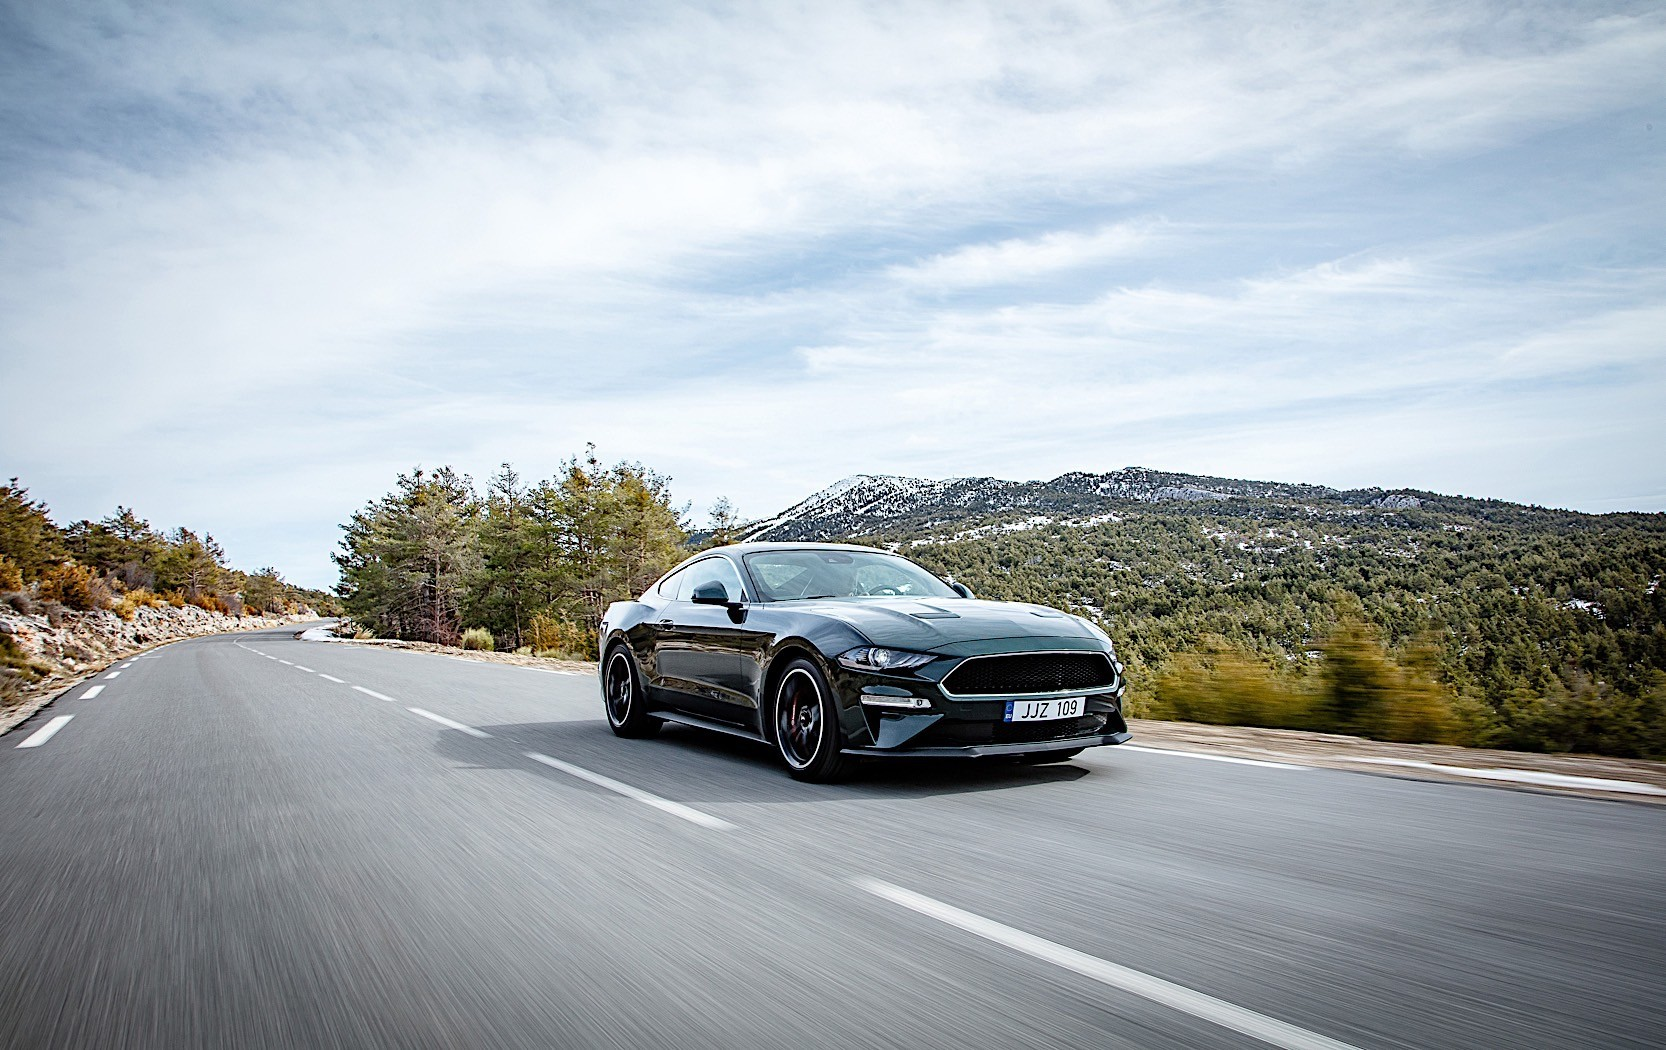 2018 Ford Mustang Bullitt to Show at Brands Hatch American ... Mustang